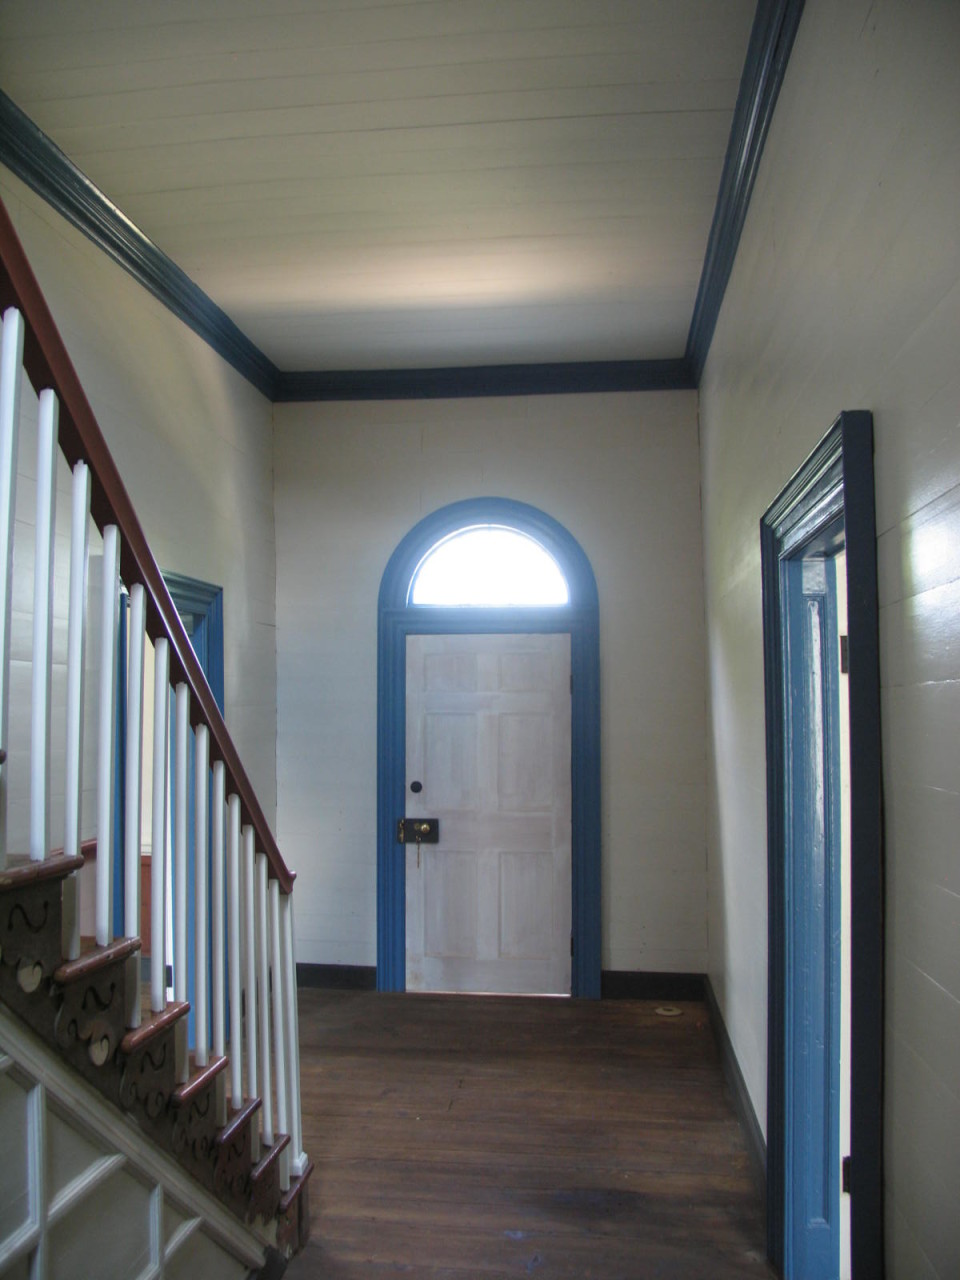 View towards entry door. Specialty restoration painting ongoing.